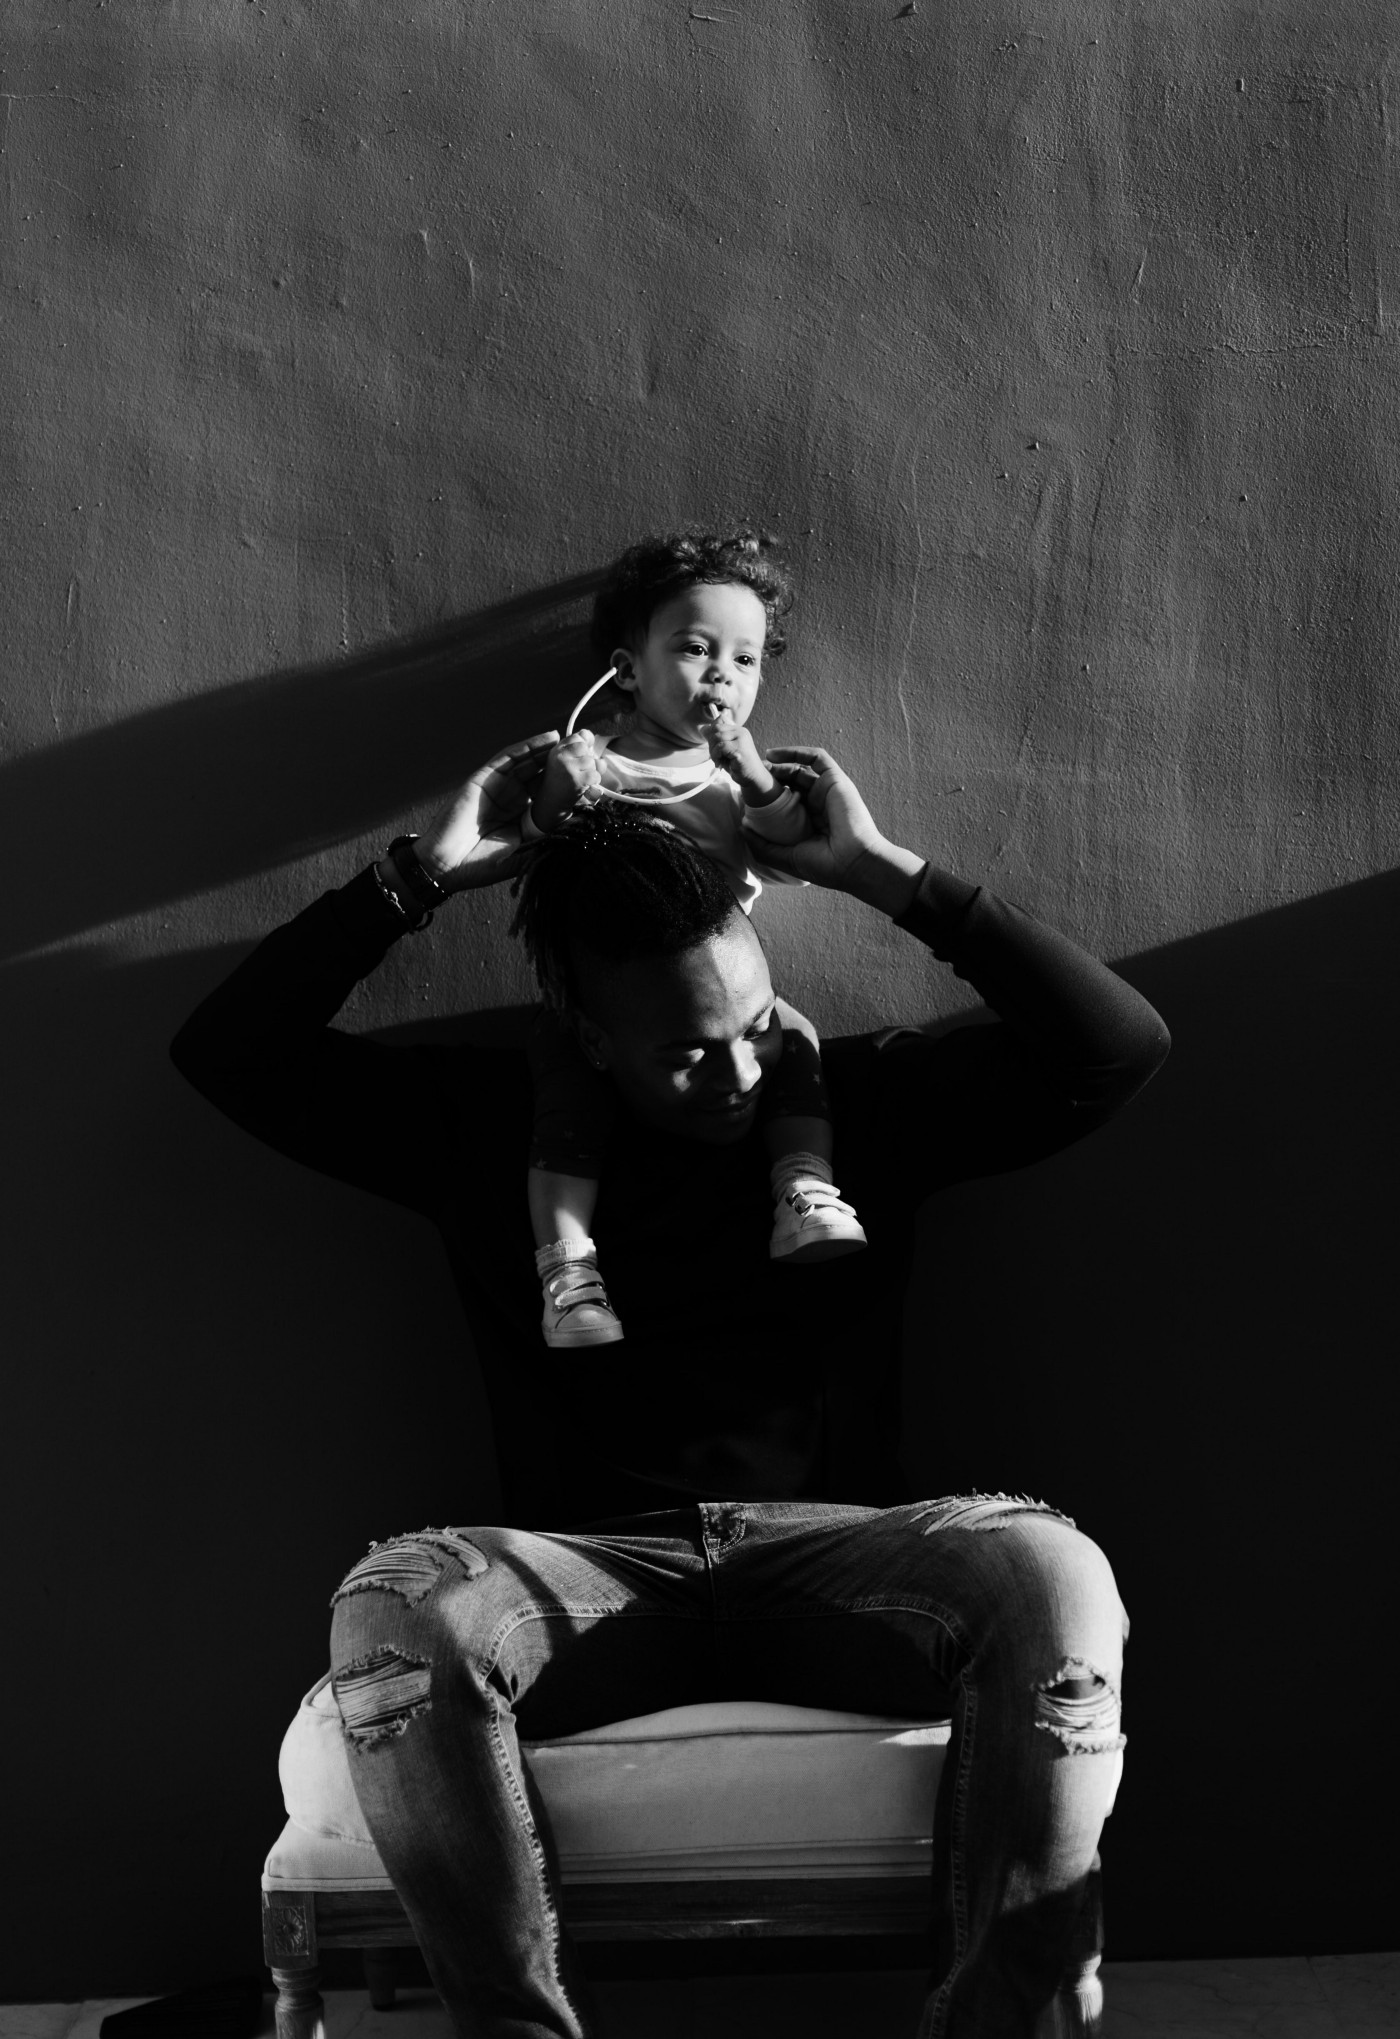 Black and white photo of a father holding young child.